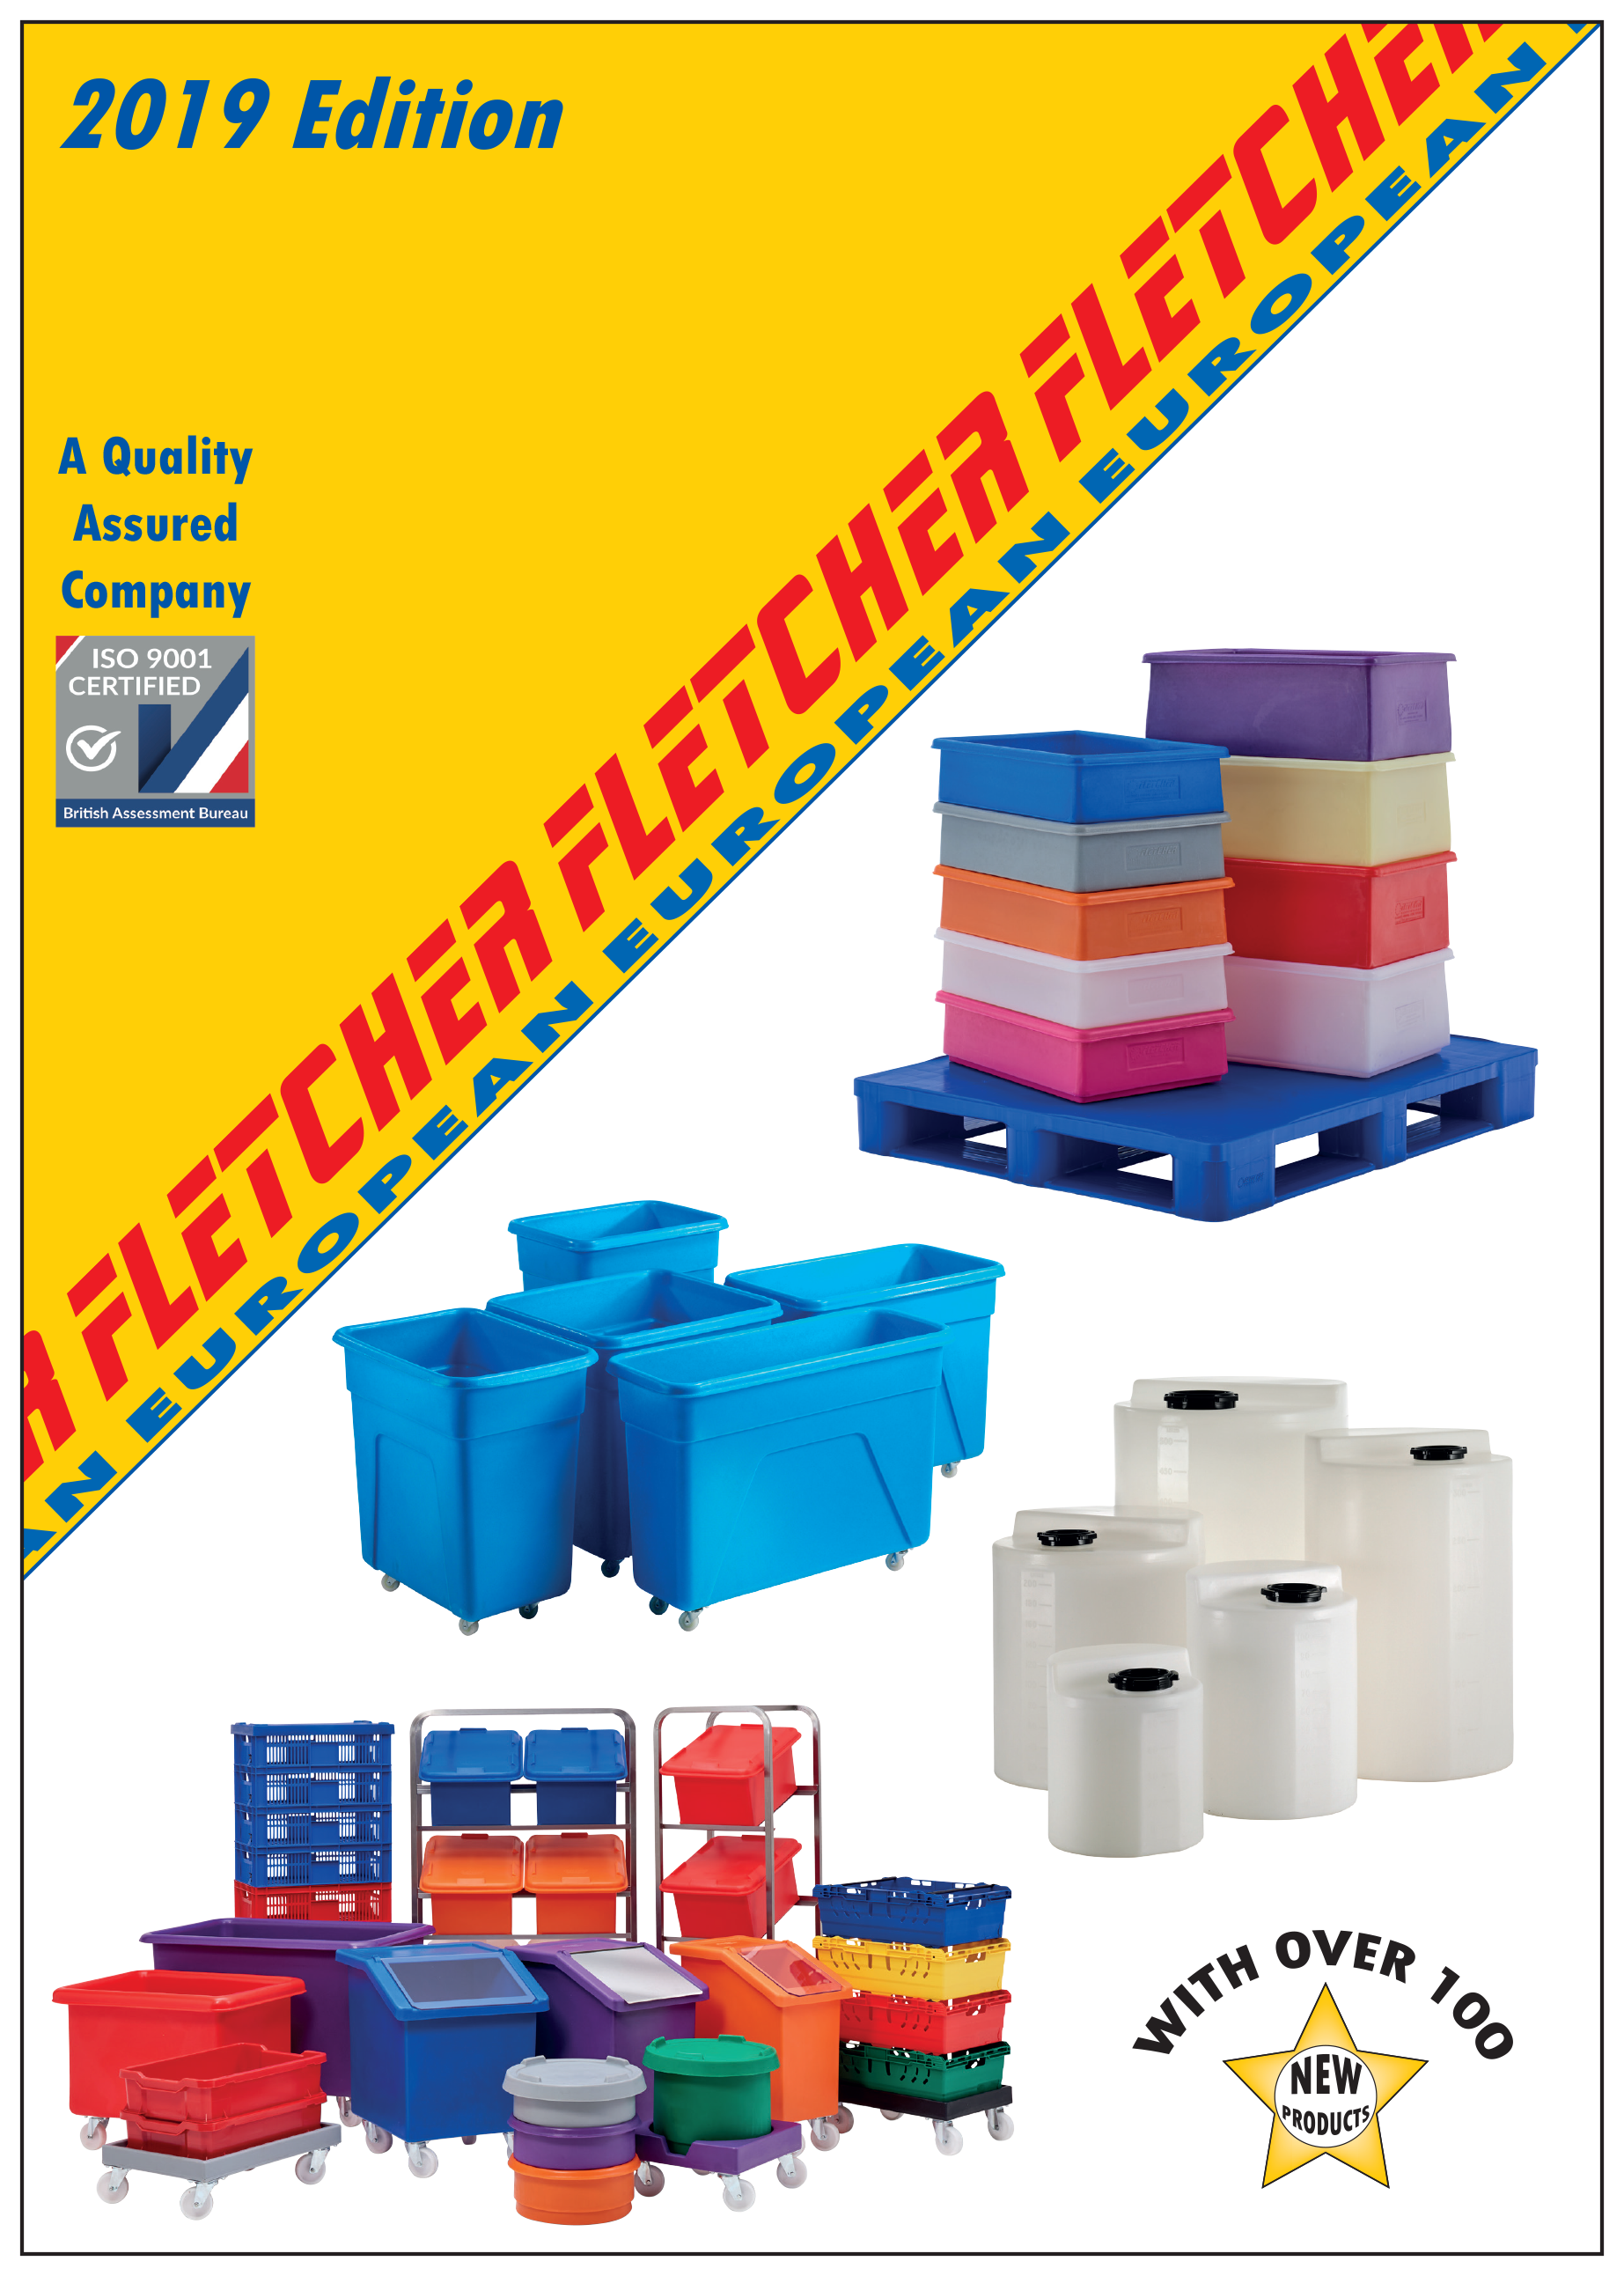 Fletcher 2019 Catalogue